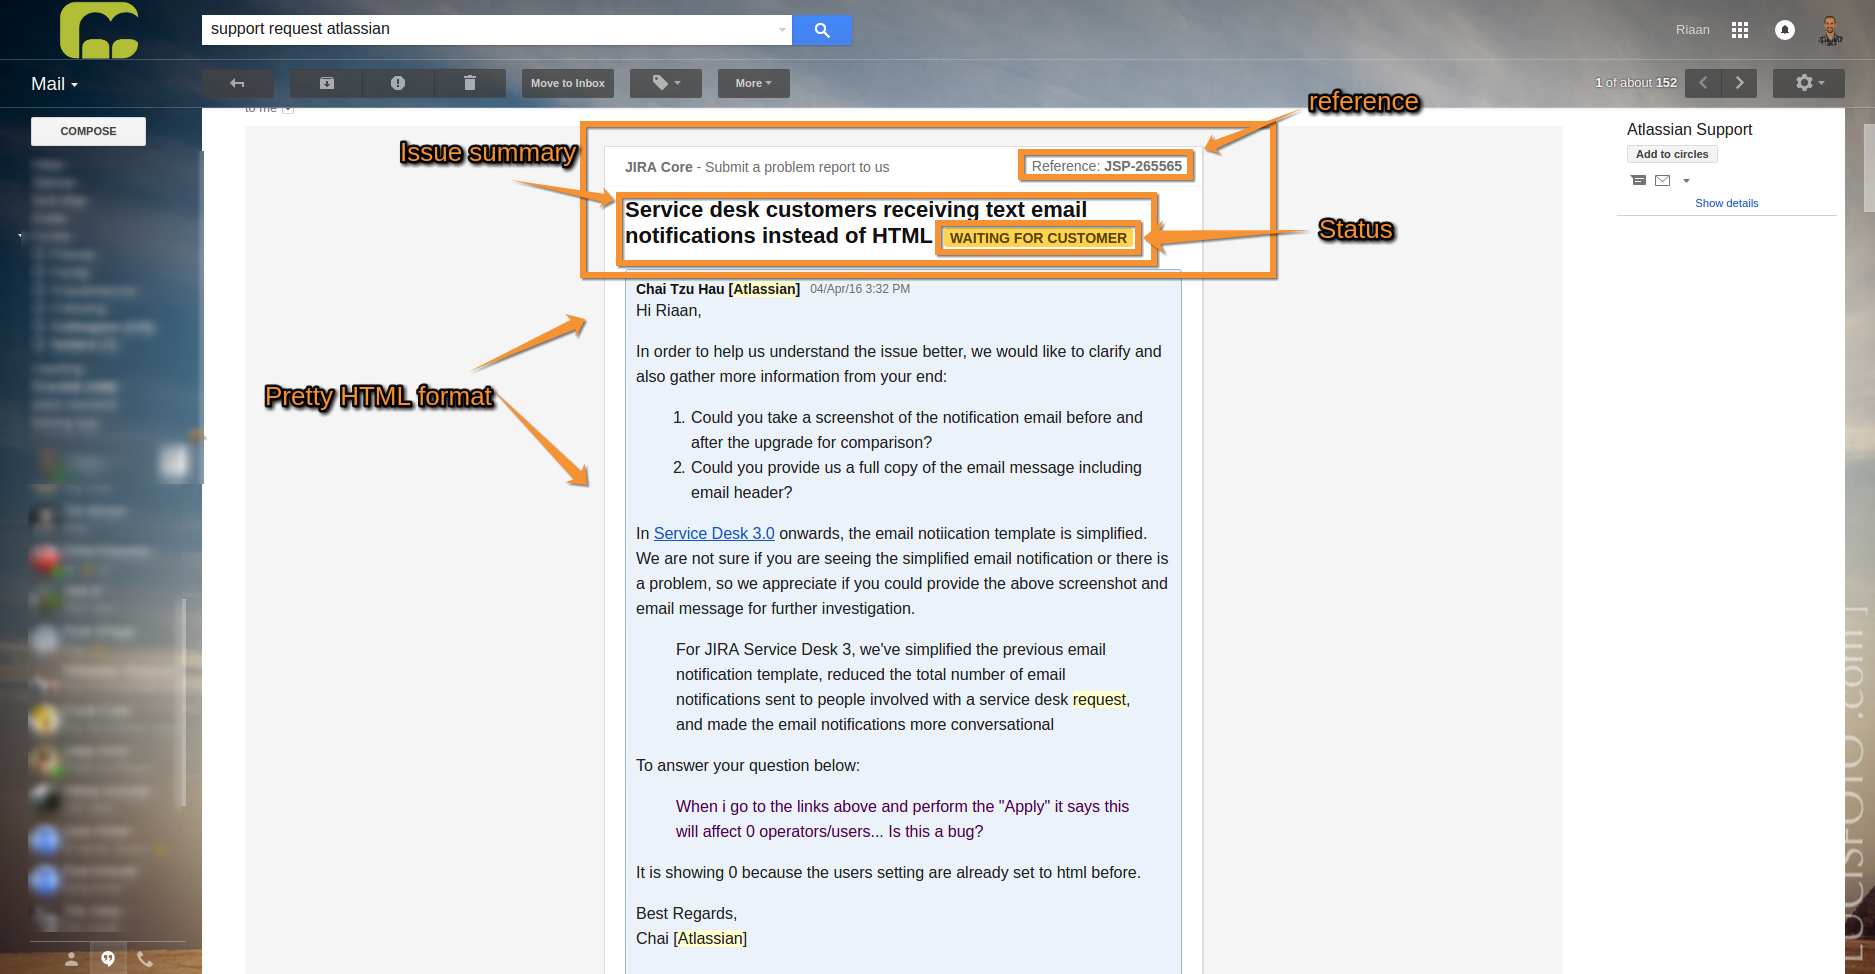 JSDSERVER-2307] Email notification template changes in Service Desk ...